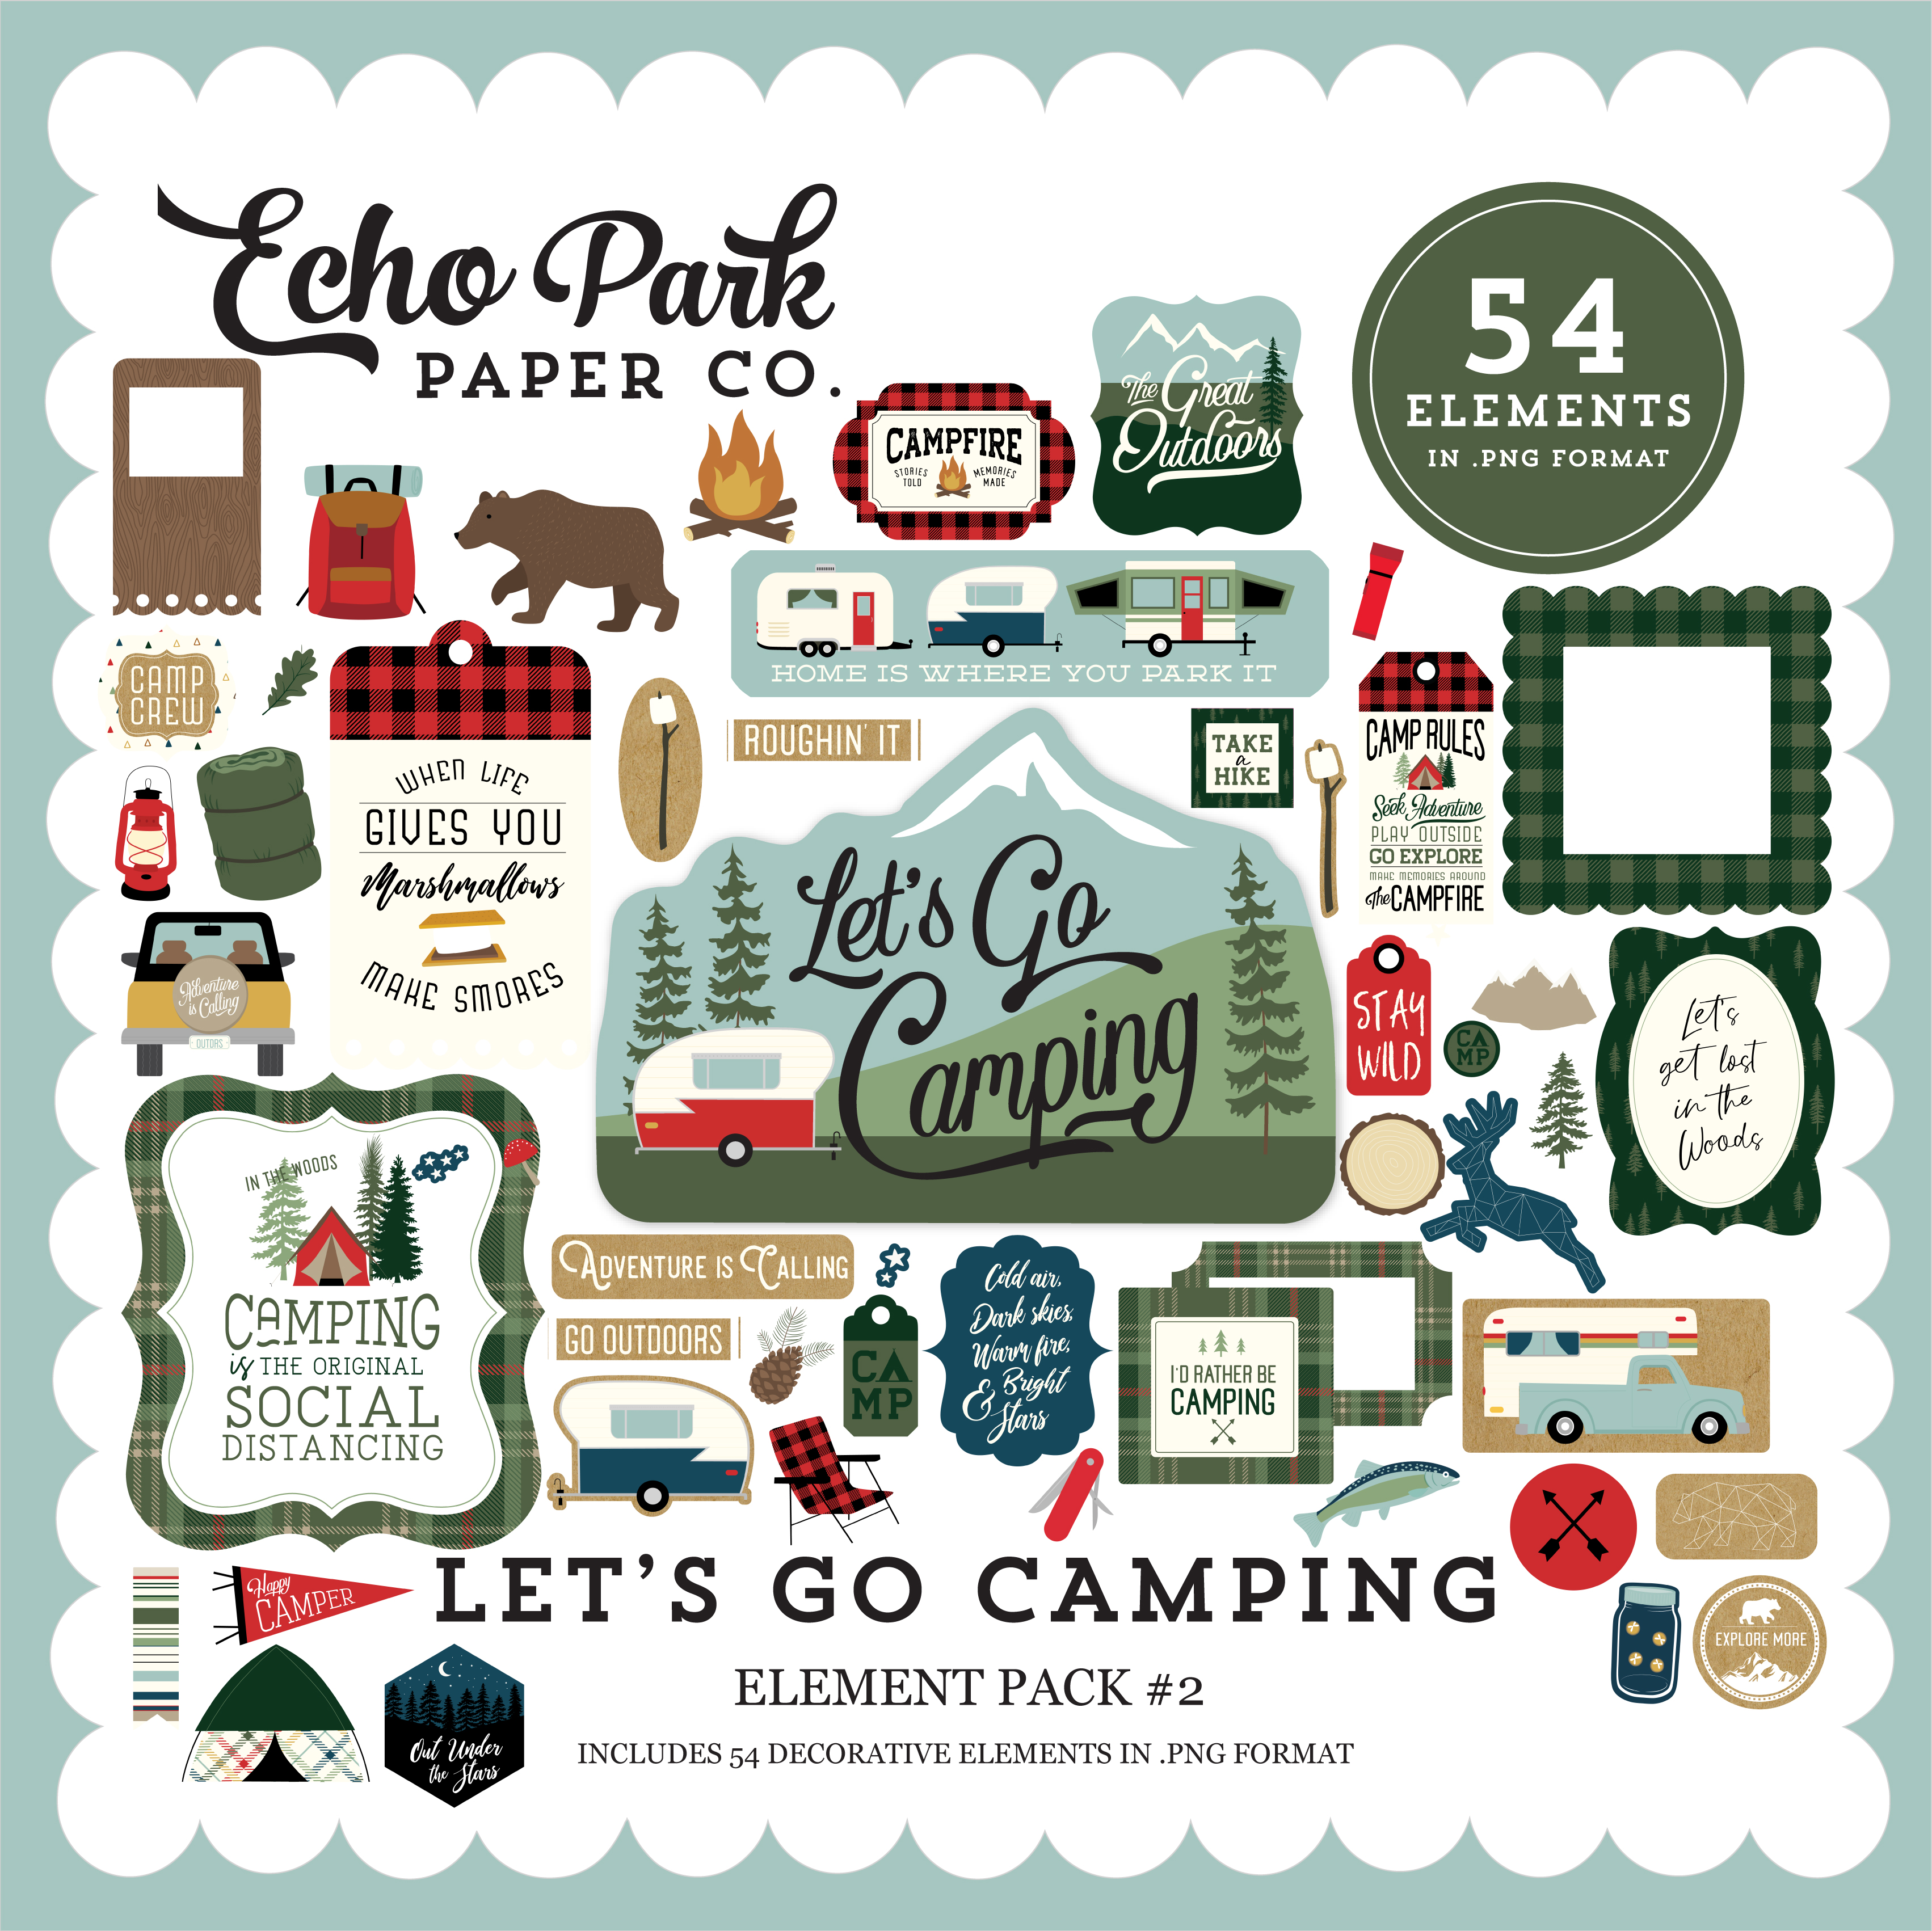 Let's Go Camping Element Pack #2